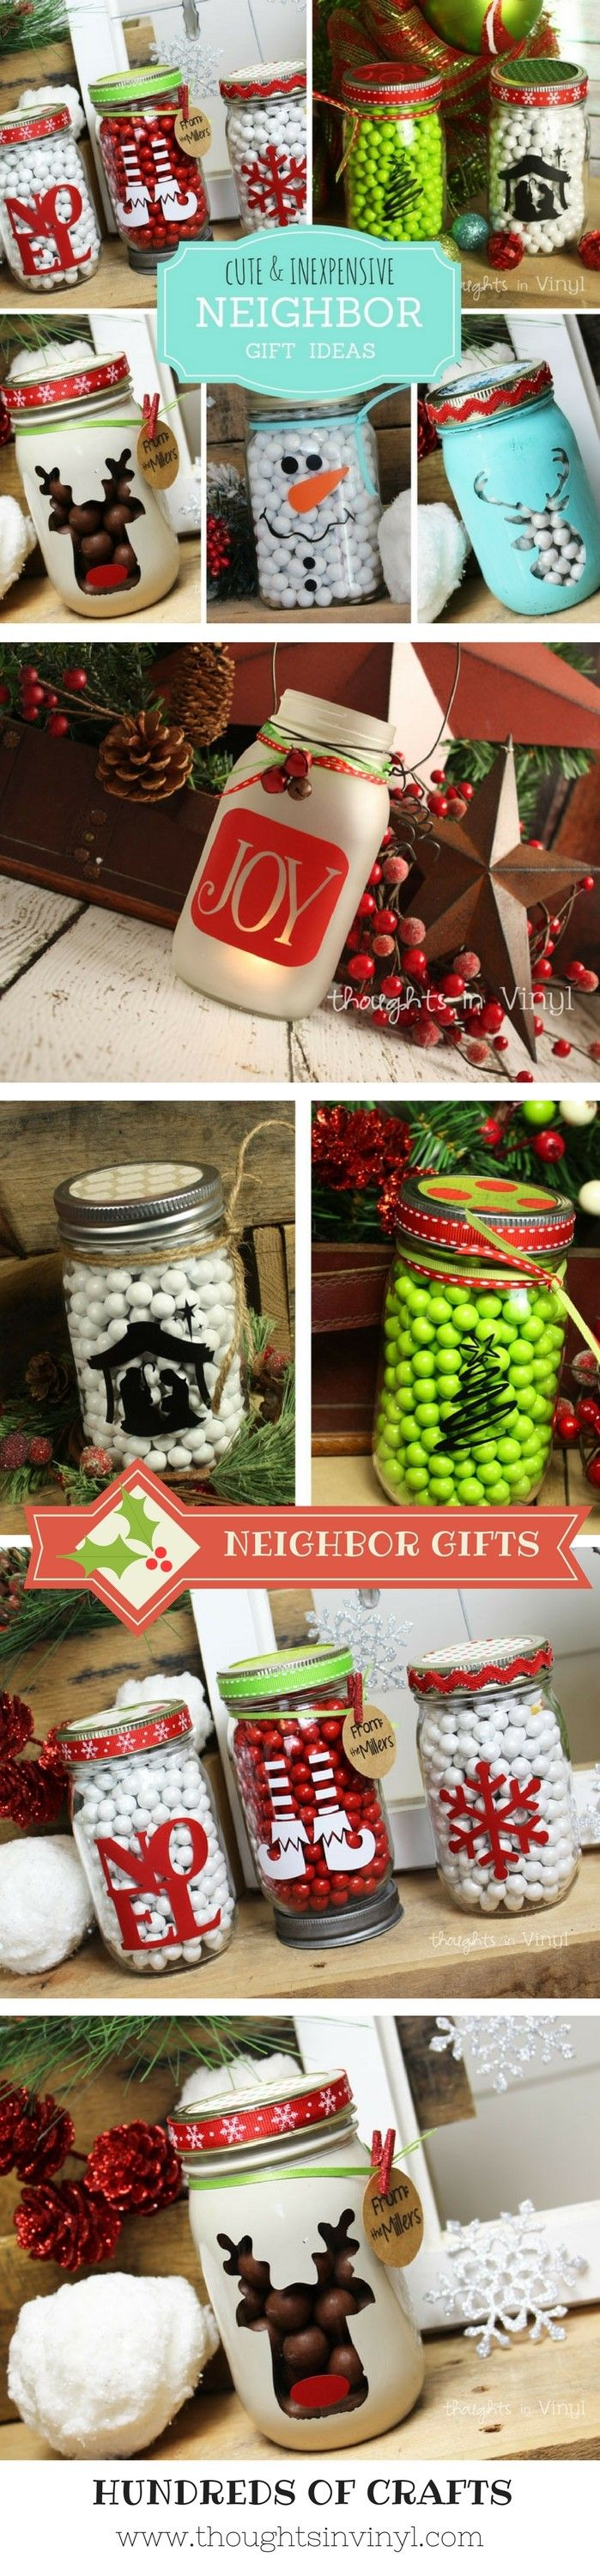 Christmas Neighbor gifts!  Perfect for a friend or teacher.  Only $2